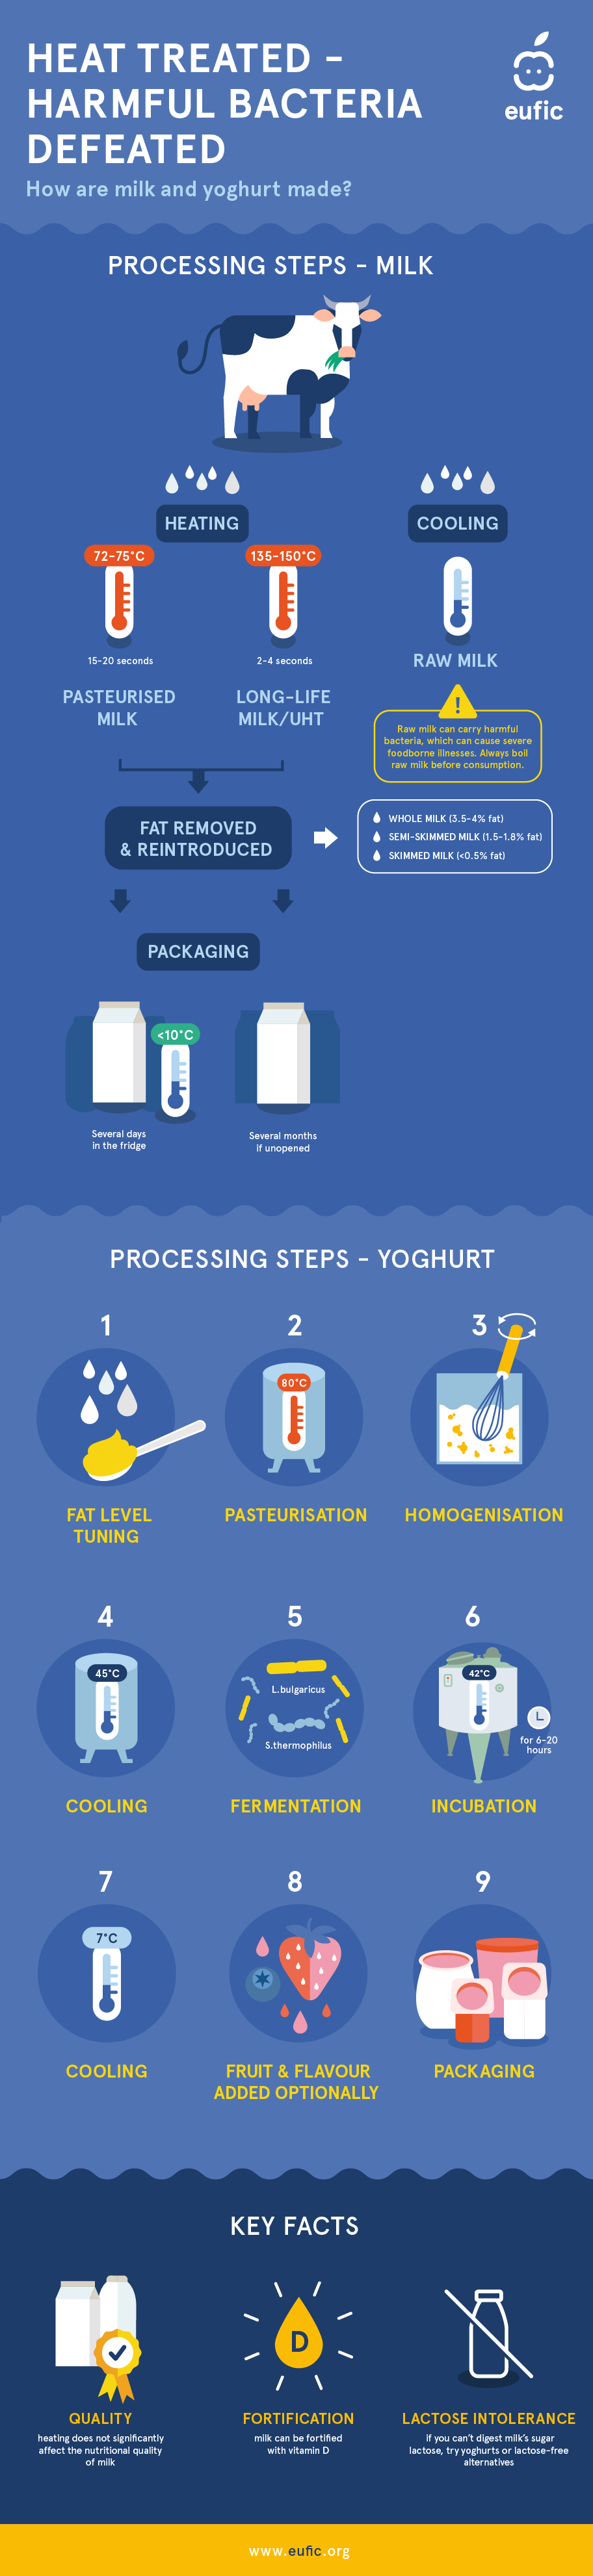 The processing steps of milk and yoghurt